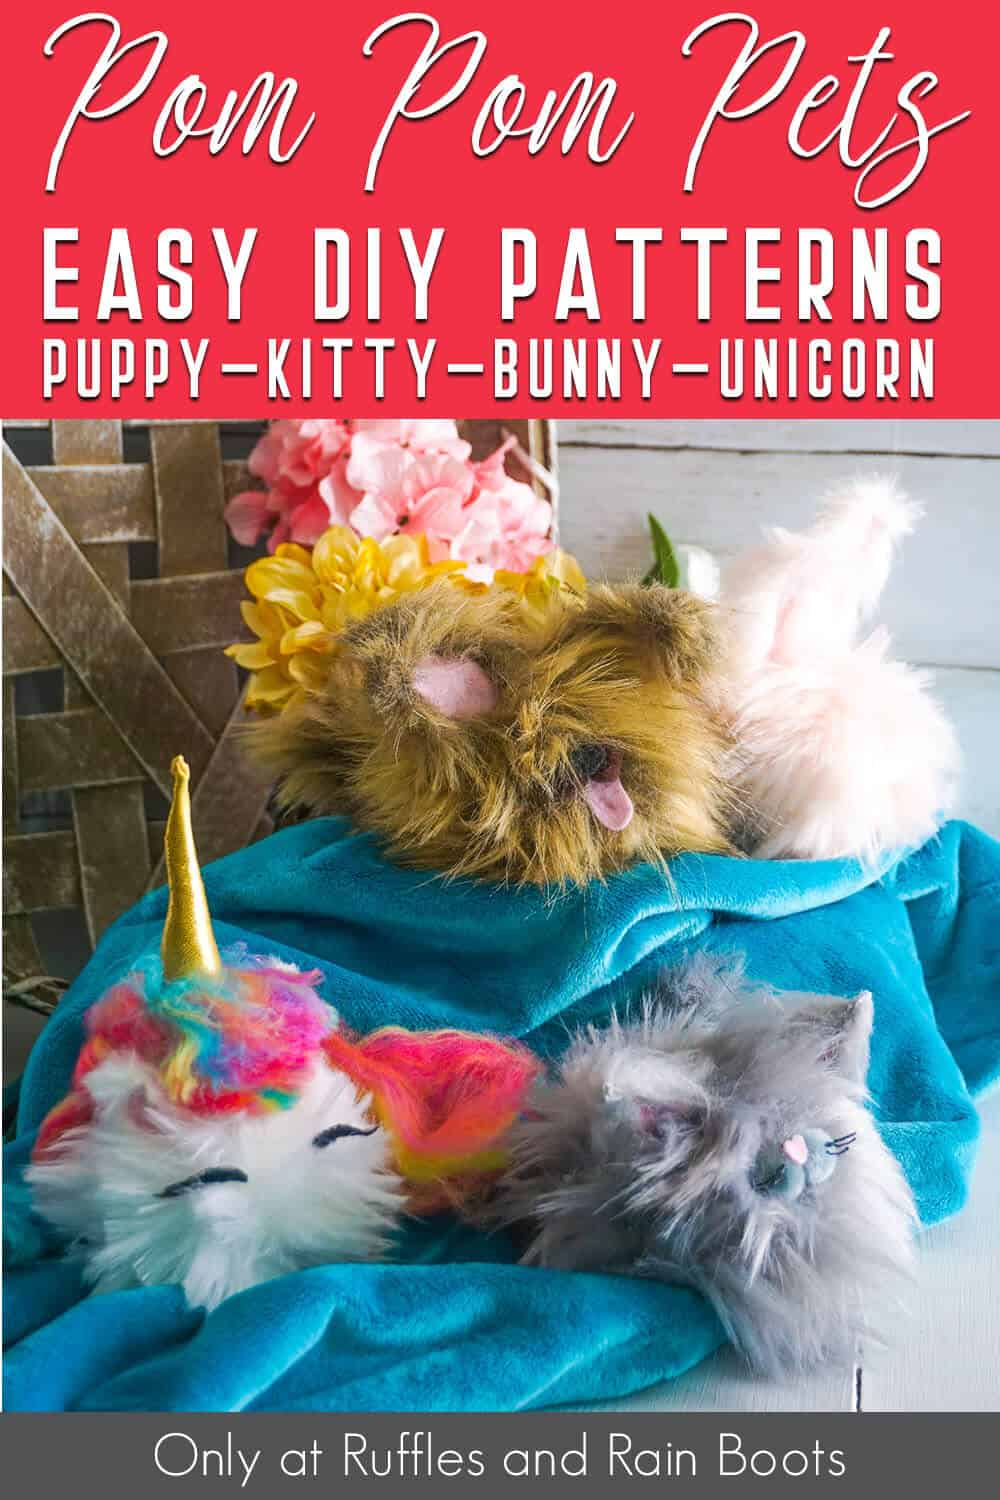 easy diy pom poms from faux fur made to look like animals with text which reads pom pom pets easy diy patterns bunny kitty puppy unicorn